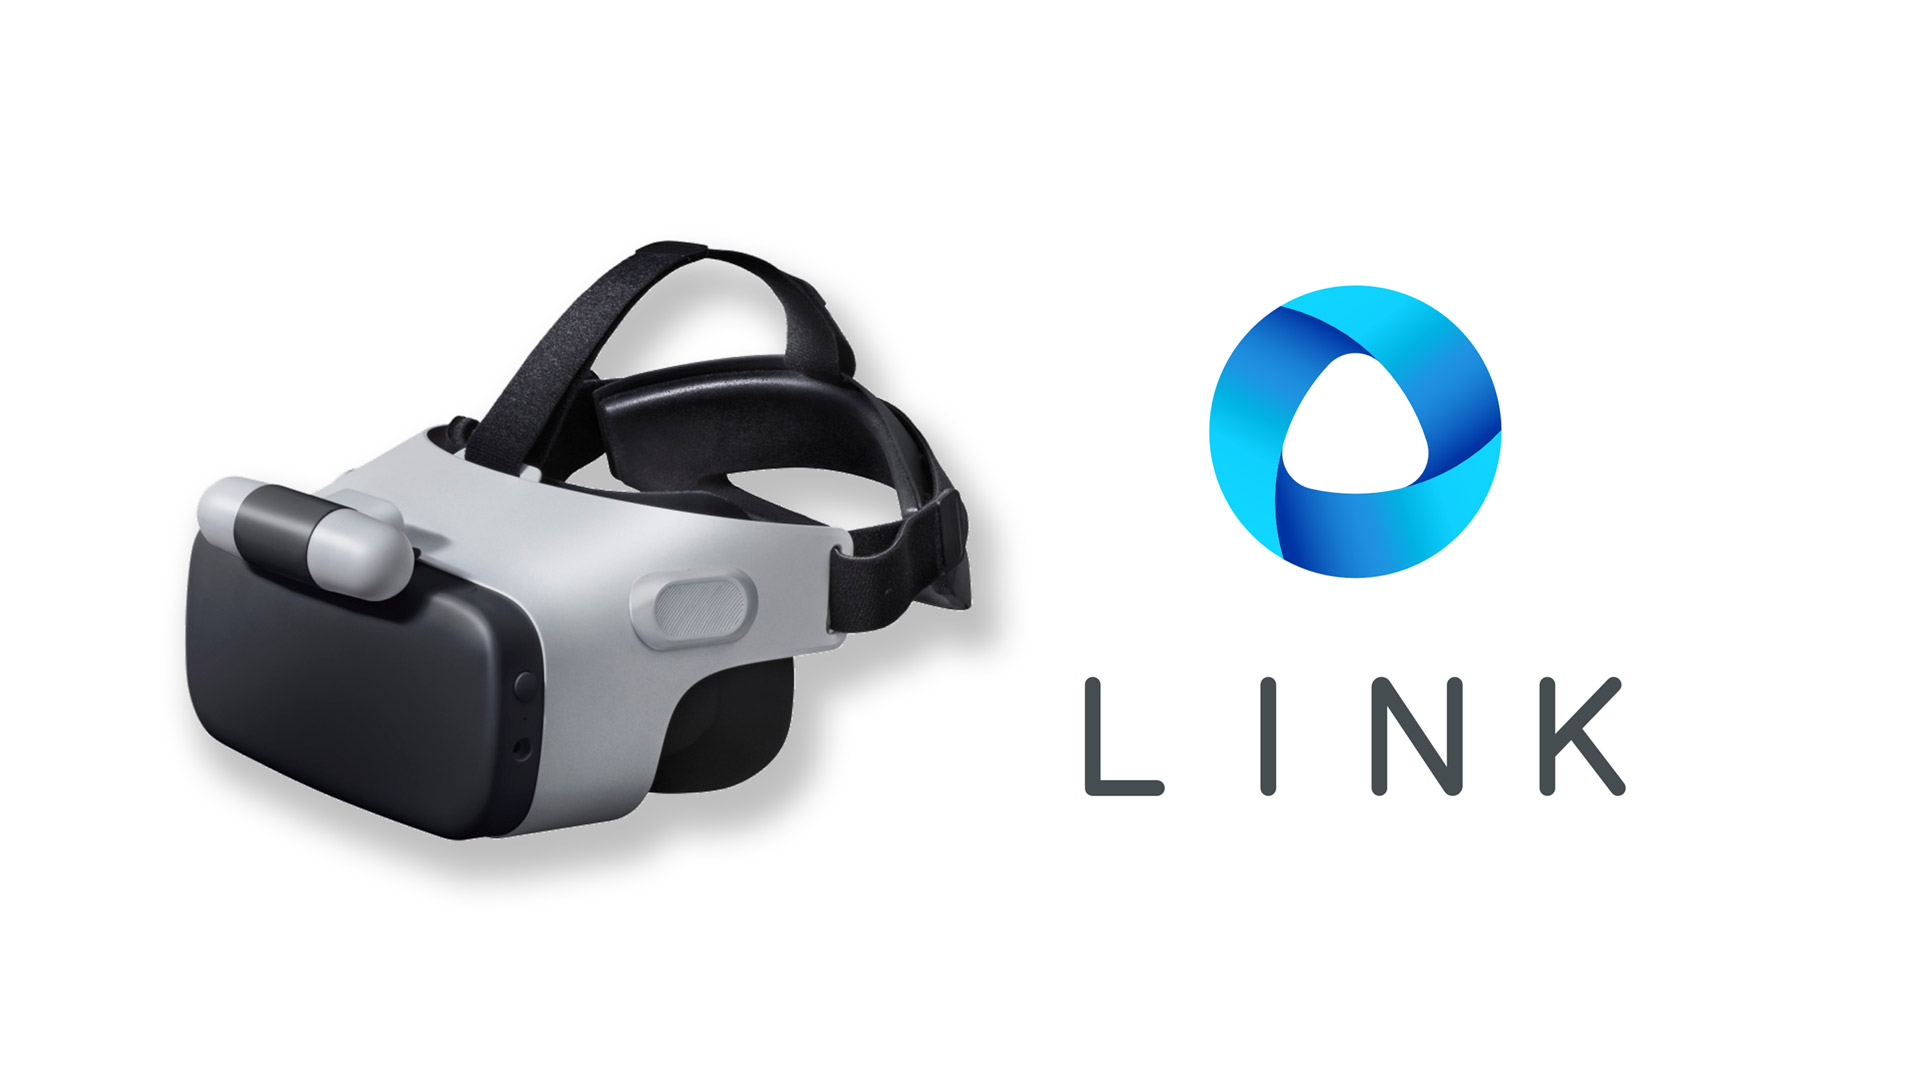 563a7f0c186d HTC s New  Link  Mobile VR Headset is (bizarrely) Not Part of the Vive  Brand – Road to VR